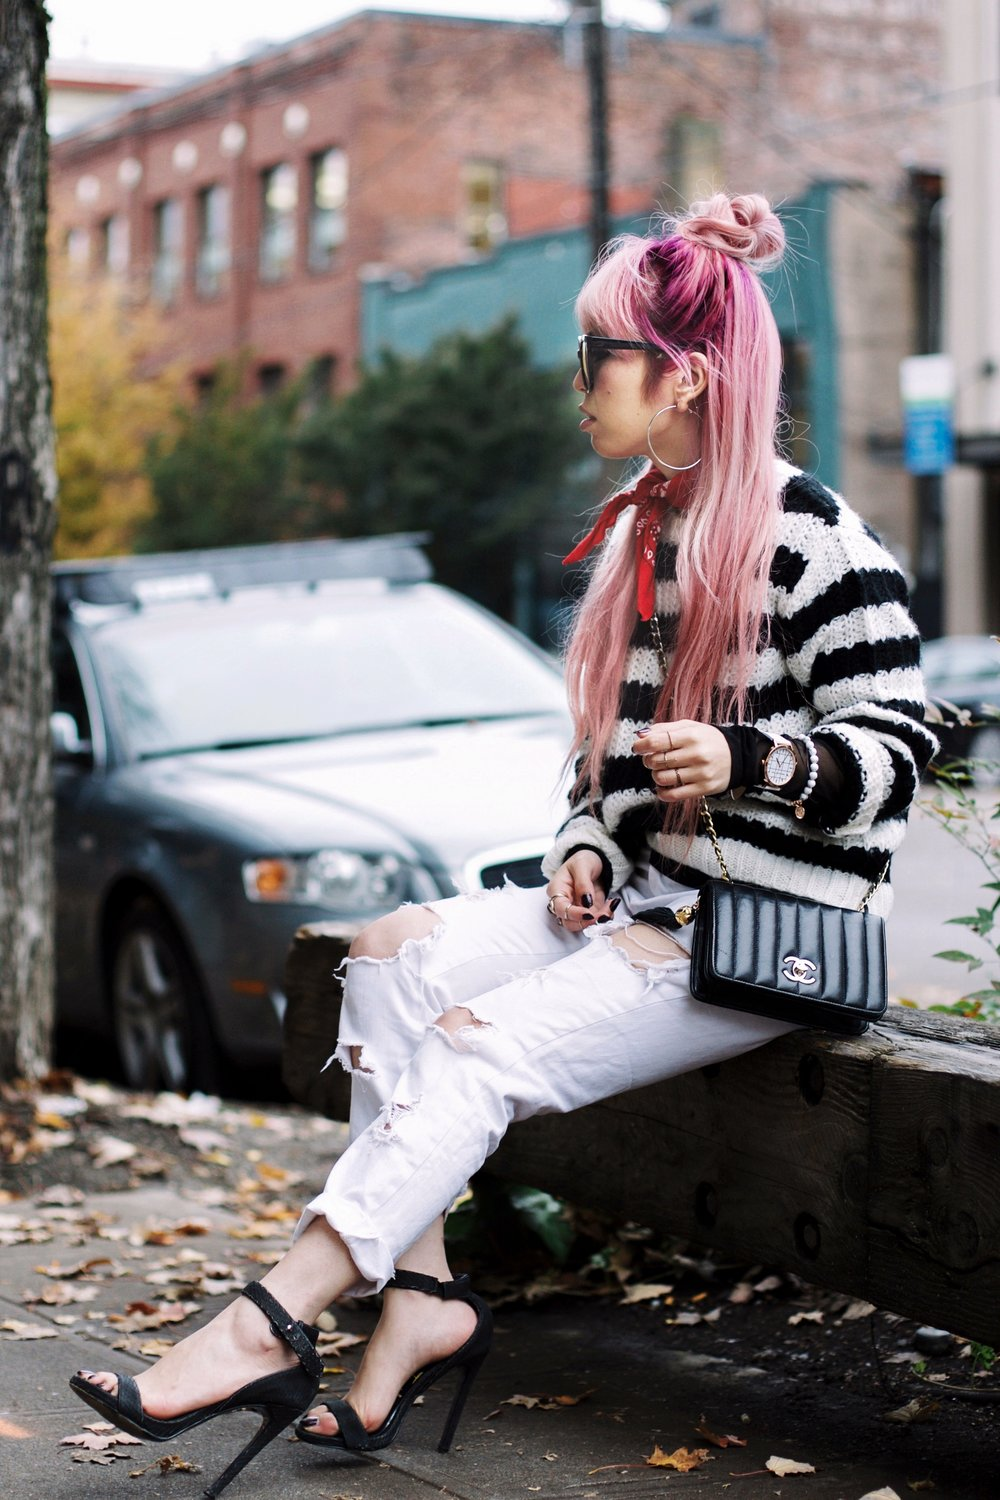 Urban Outfitters Sunglasses & Red bandana-Who What Wear Striped Crew Sweater-Target-Zara Distressed white boyfriend Jeans & Black Sheer Top-Vintage Chanel Crossbody Bag-ASOS Ankle Strap Sandals-Christian Paul Grid White Watch-Aika's Love Closet-Seattle Fashion Blogger-Japanese-Pink Hair-Half Top Knot Hair